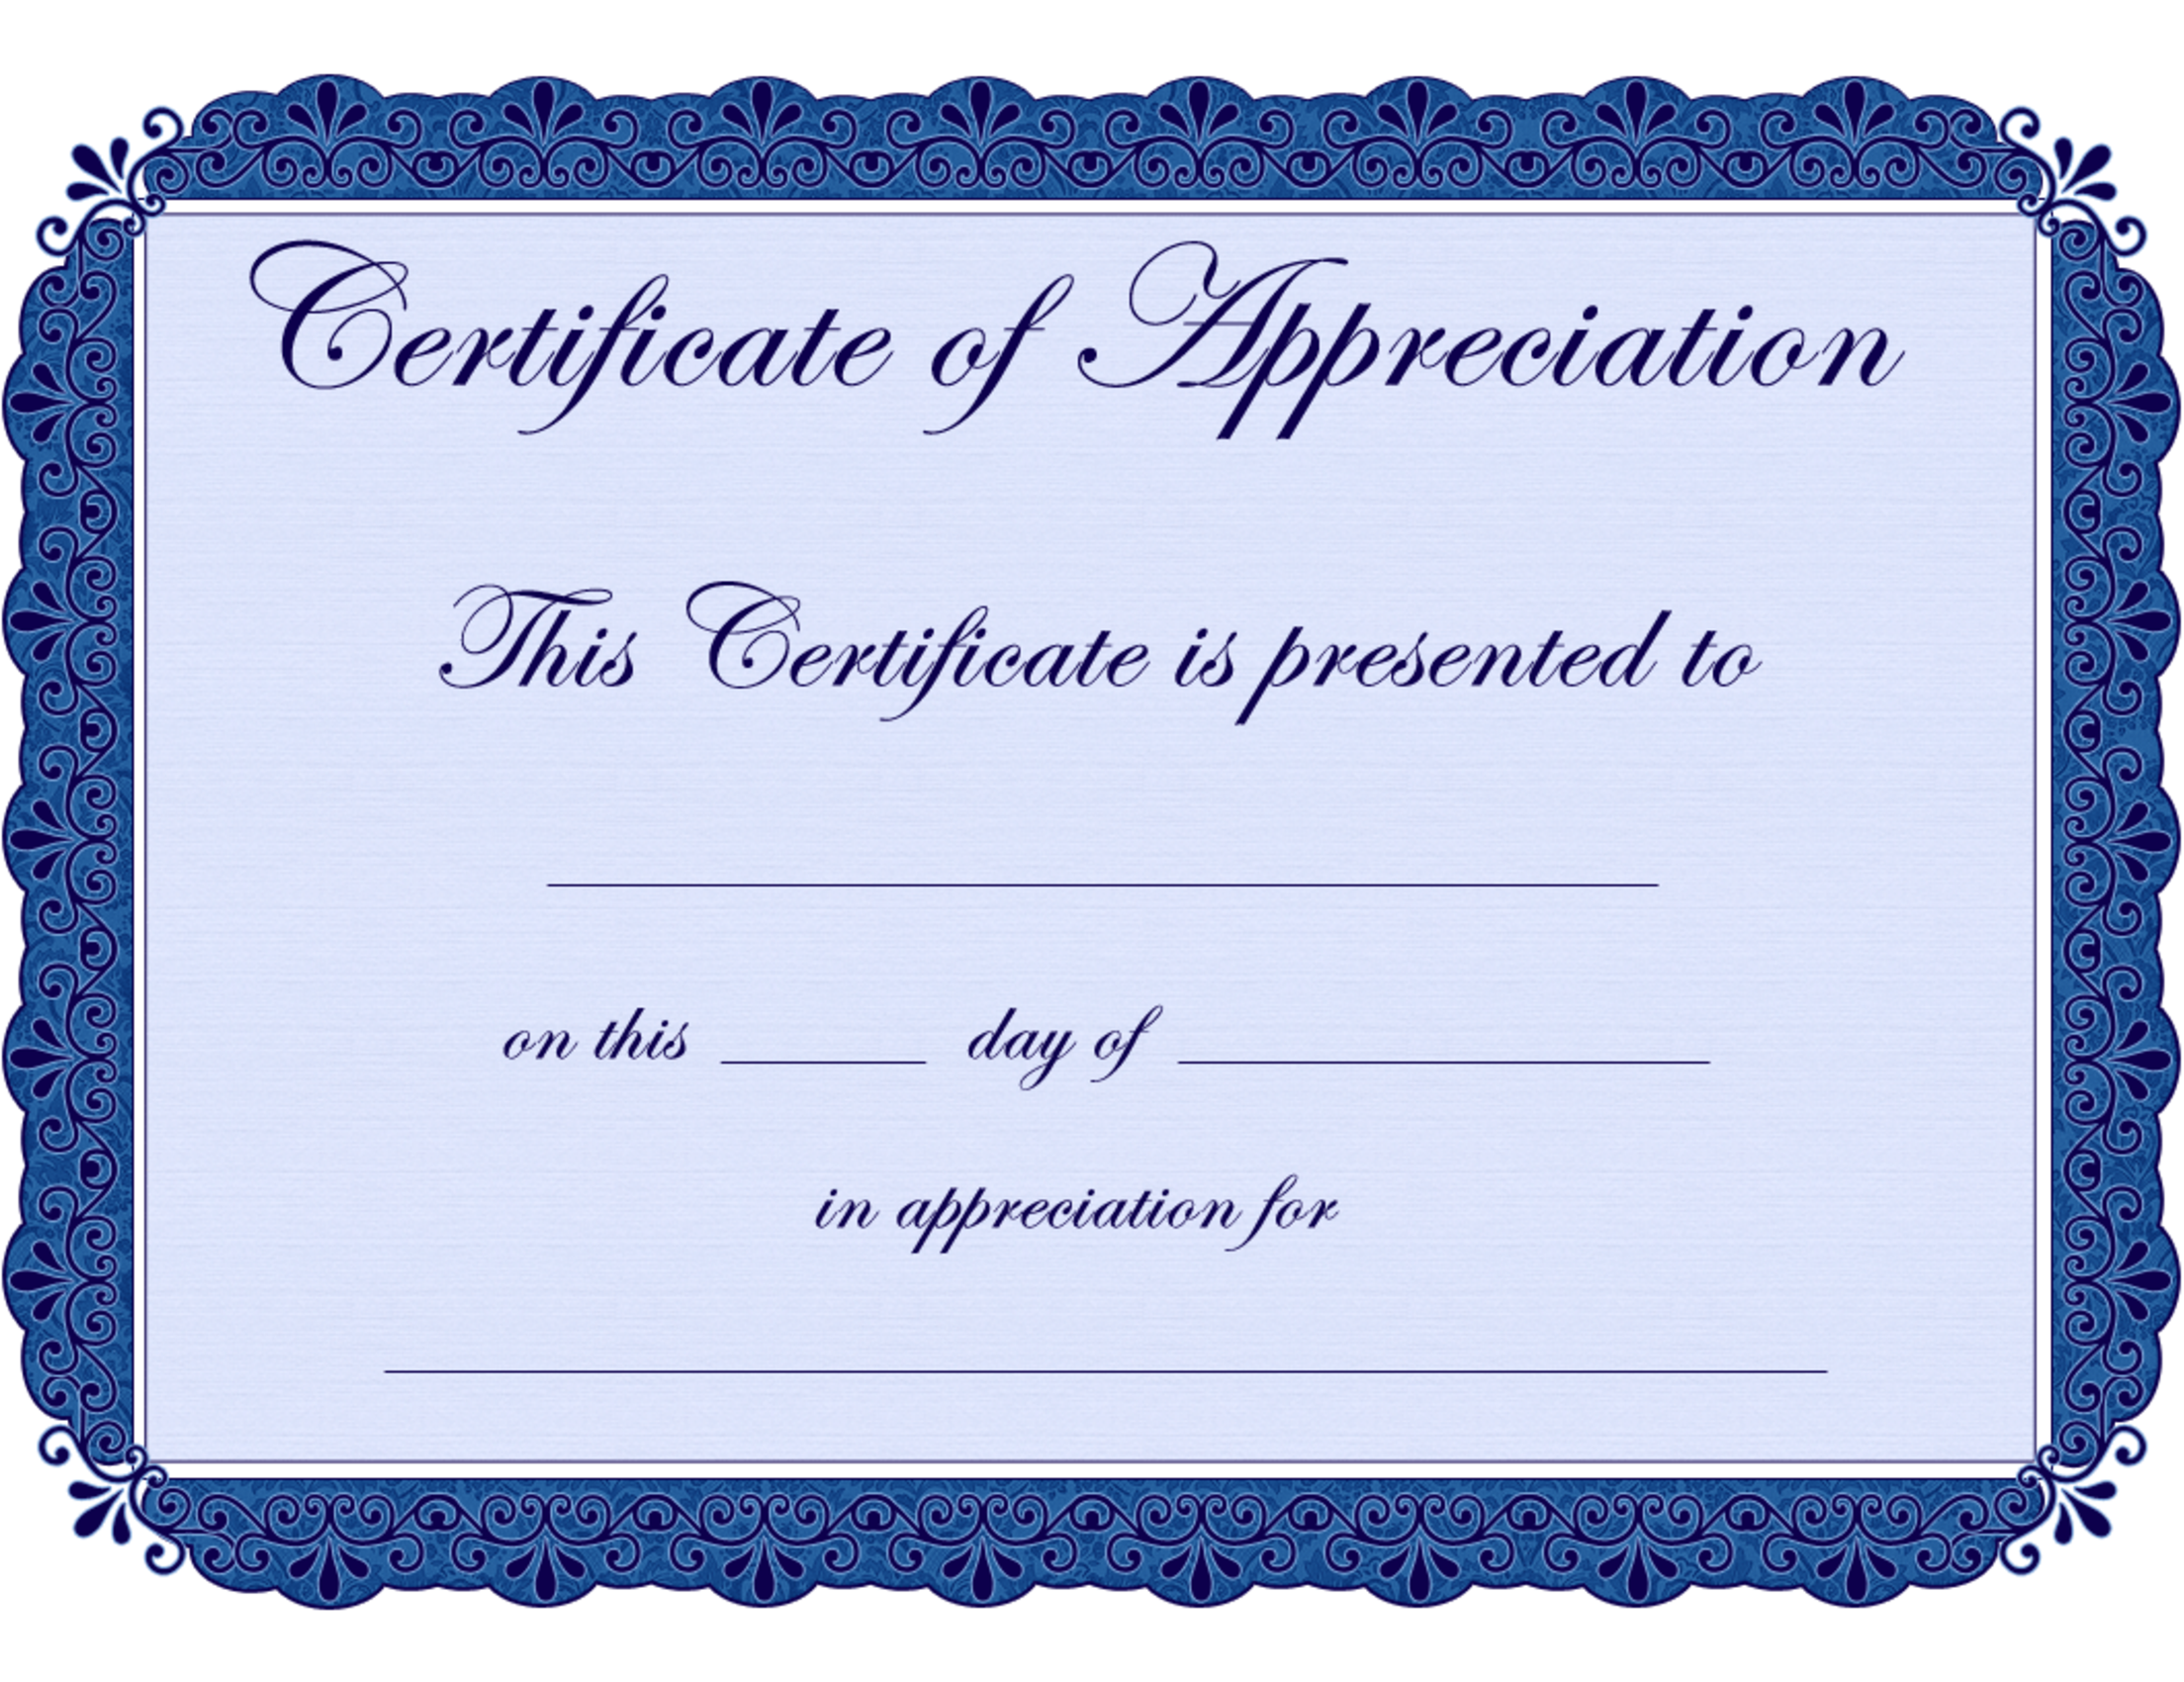 Free printable certificates certificate of appreciation certificate free printable certificates certificate of appreciation certificate yelopaper Image collections